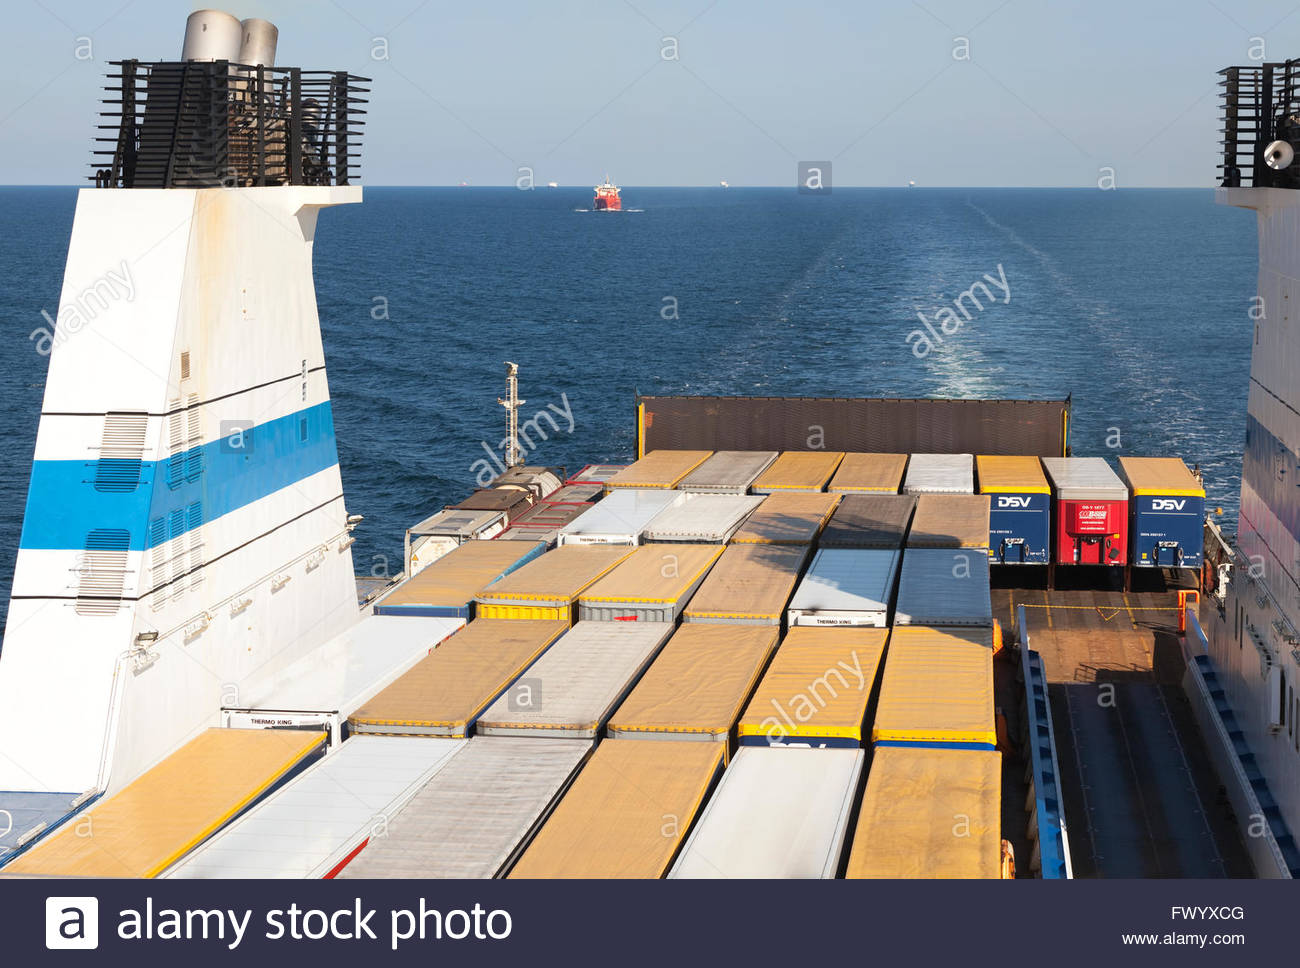 Freight on board of Finnlady cargo ship - Stock Image